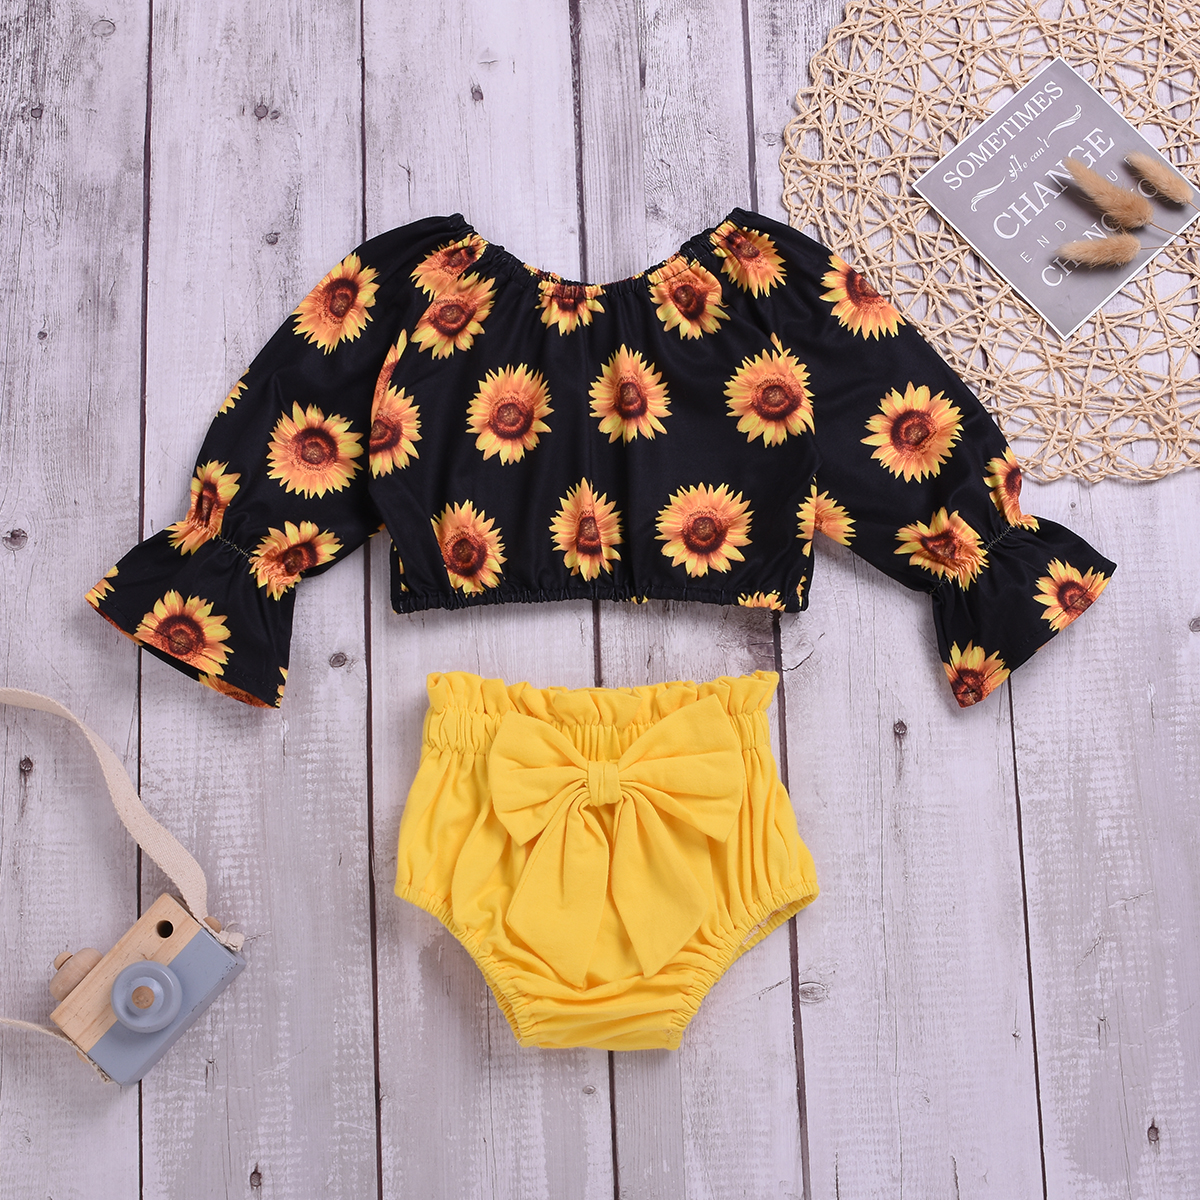 Baby Girl's Sunflower Allover Flare-sleeve Top and Bow Shorts